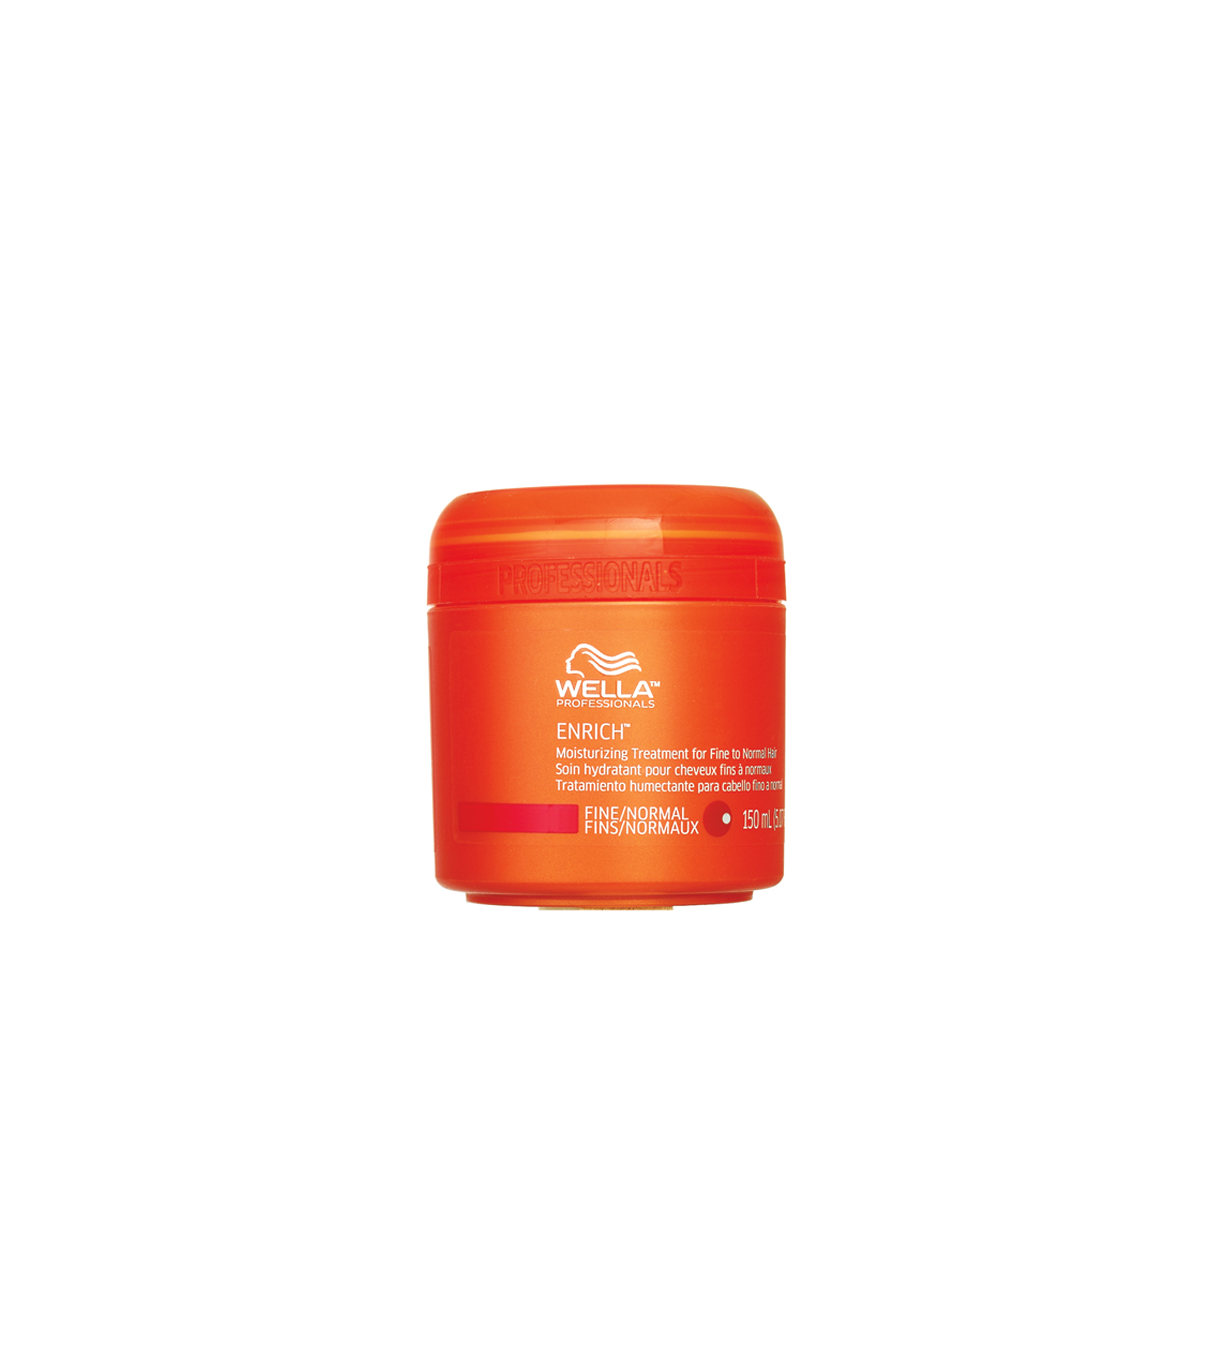 Wella Care Enrich Self Warning Mask